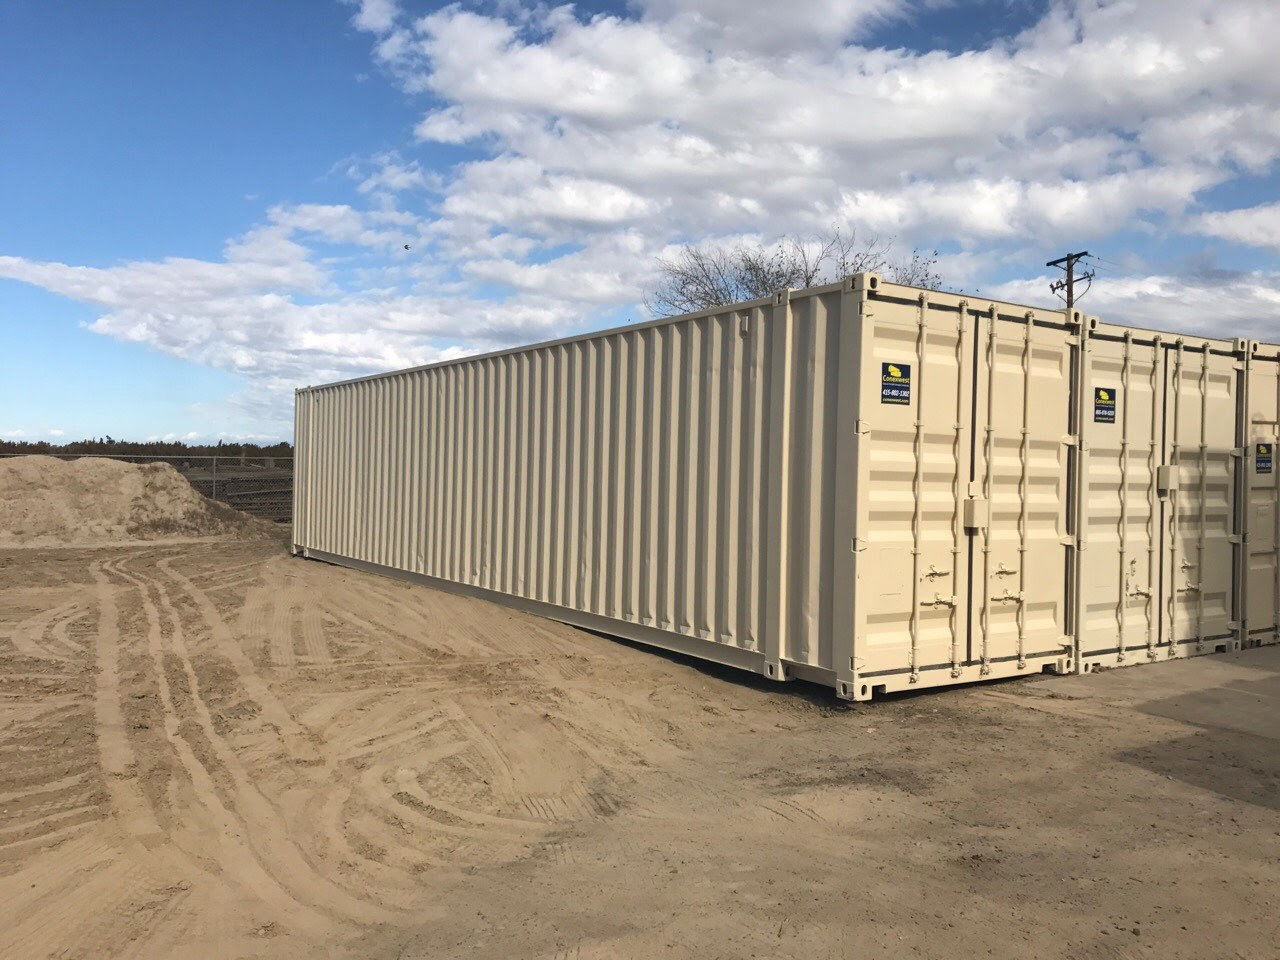 40' Refurbished shipping containers